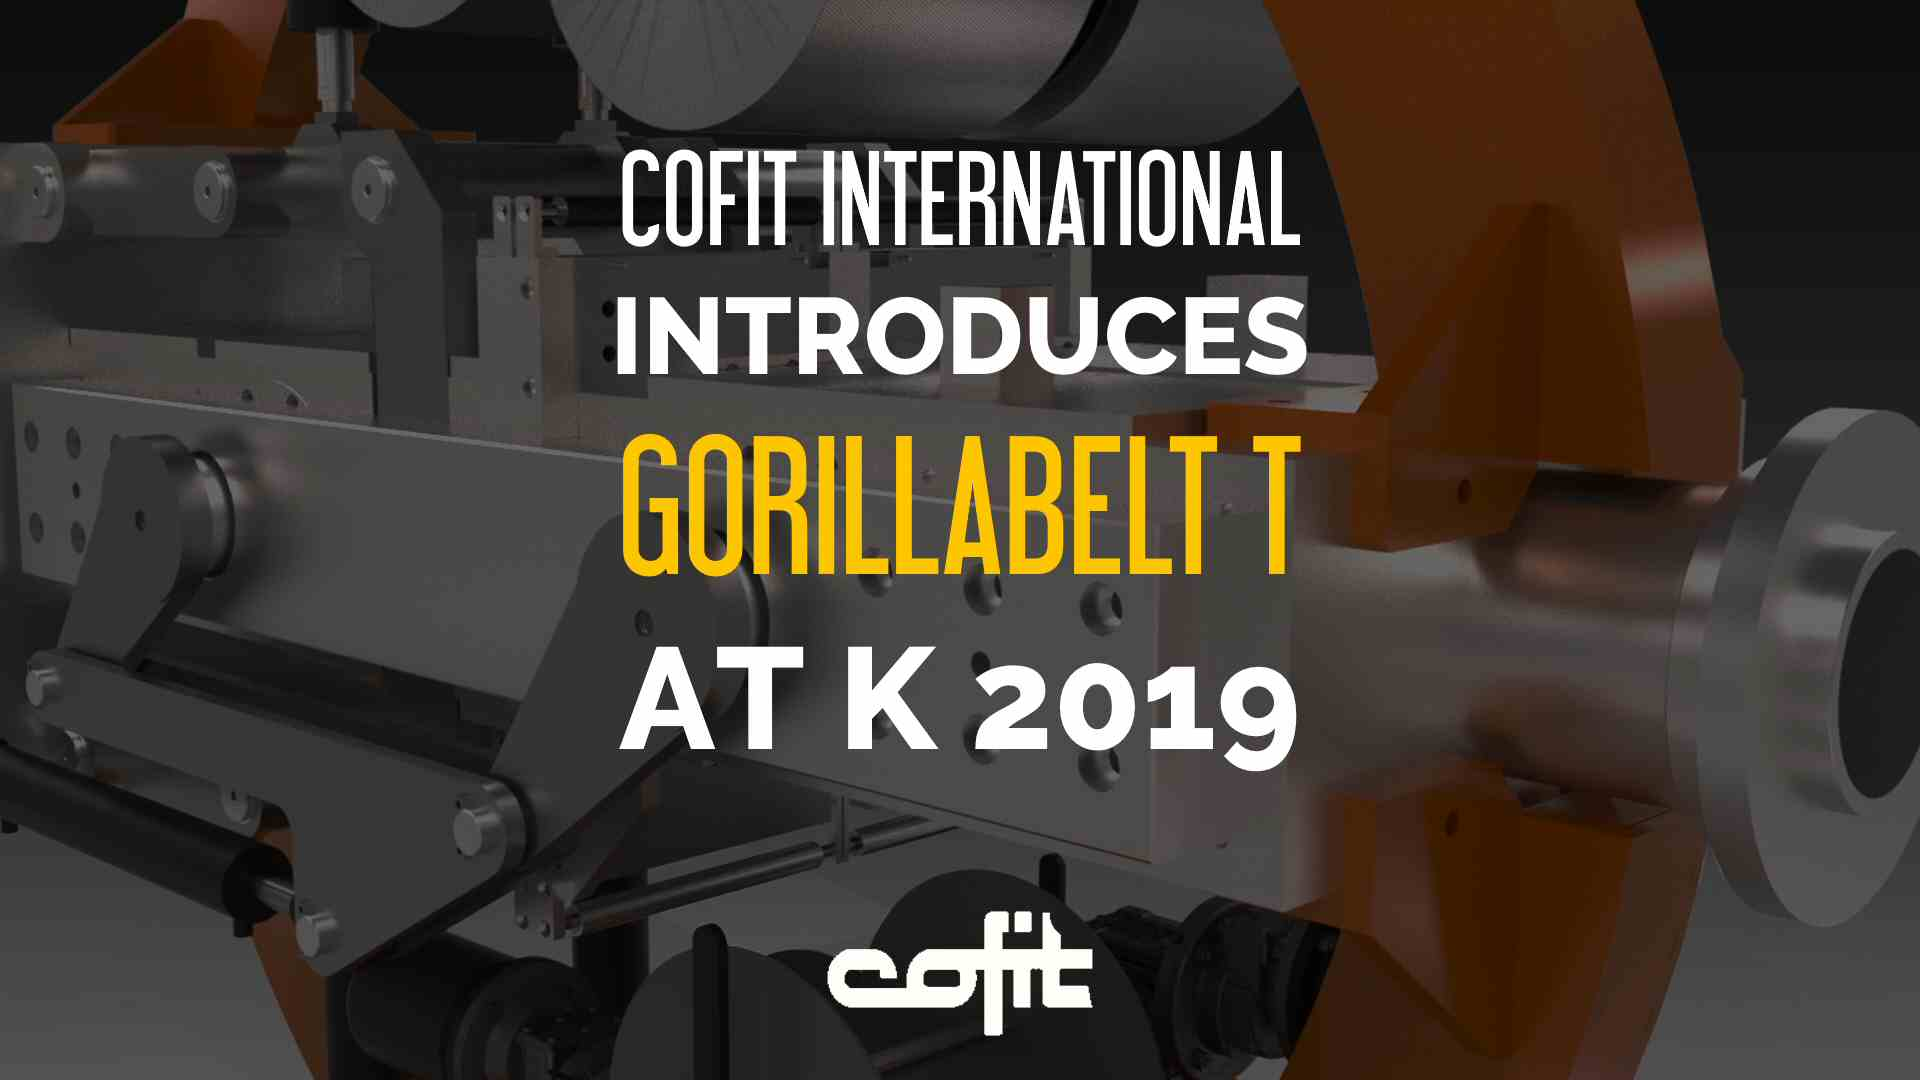 Cofit introduces Gorillabelt T at K 2019